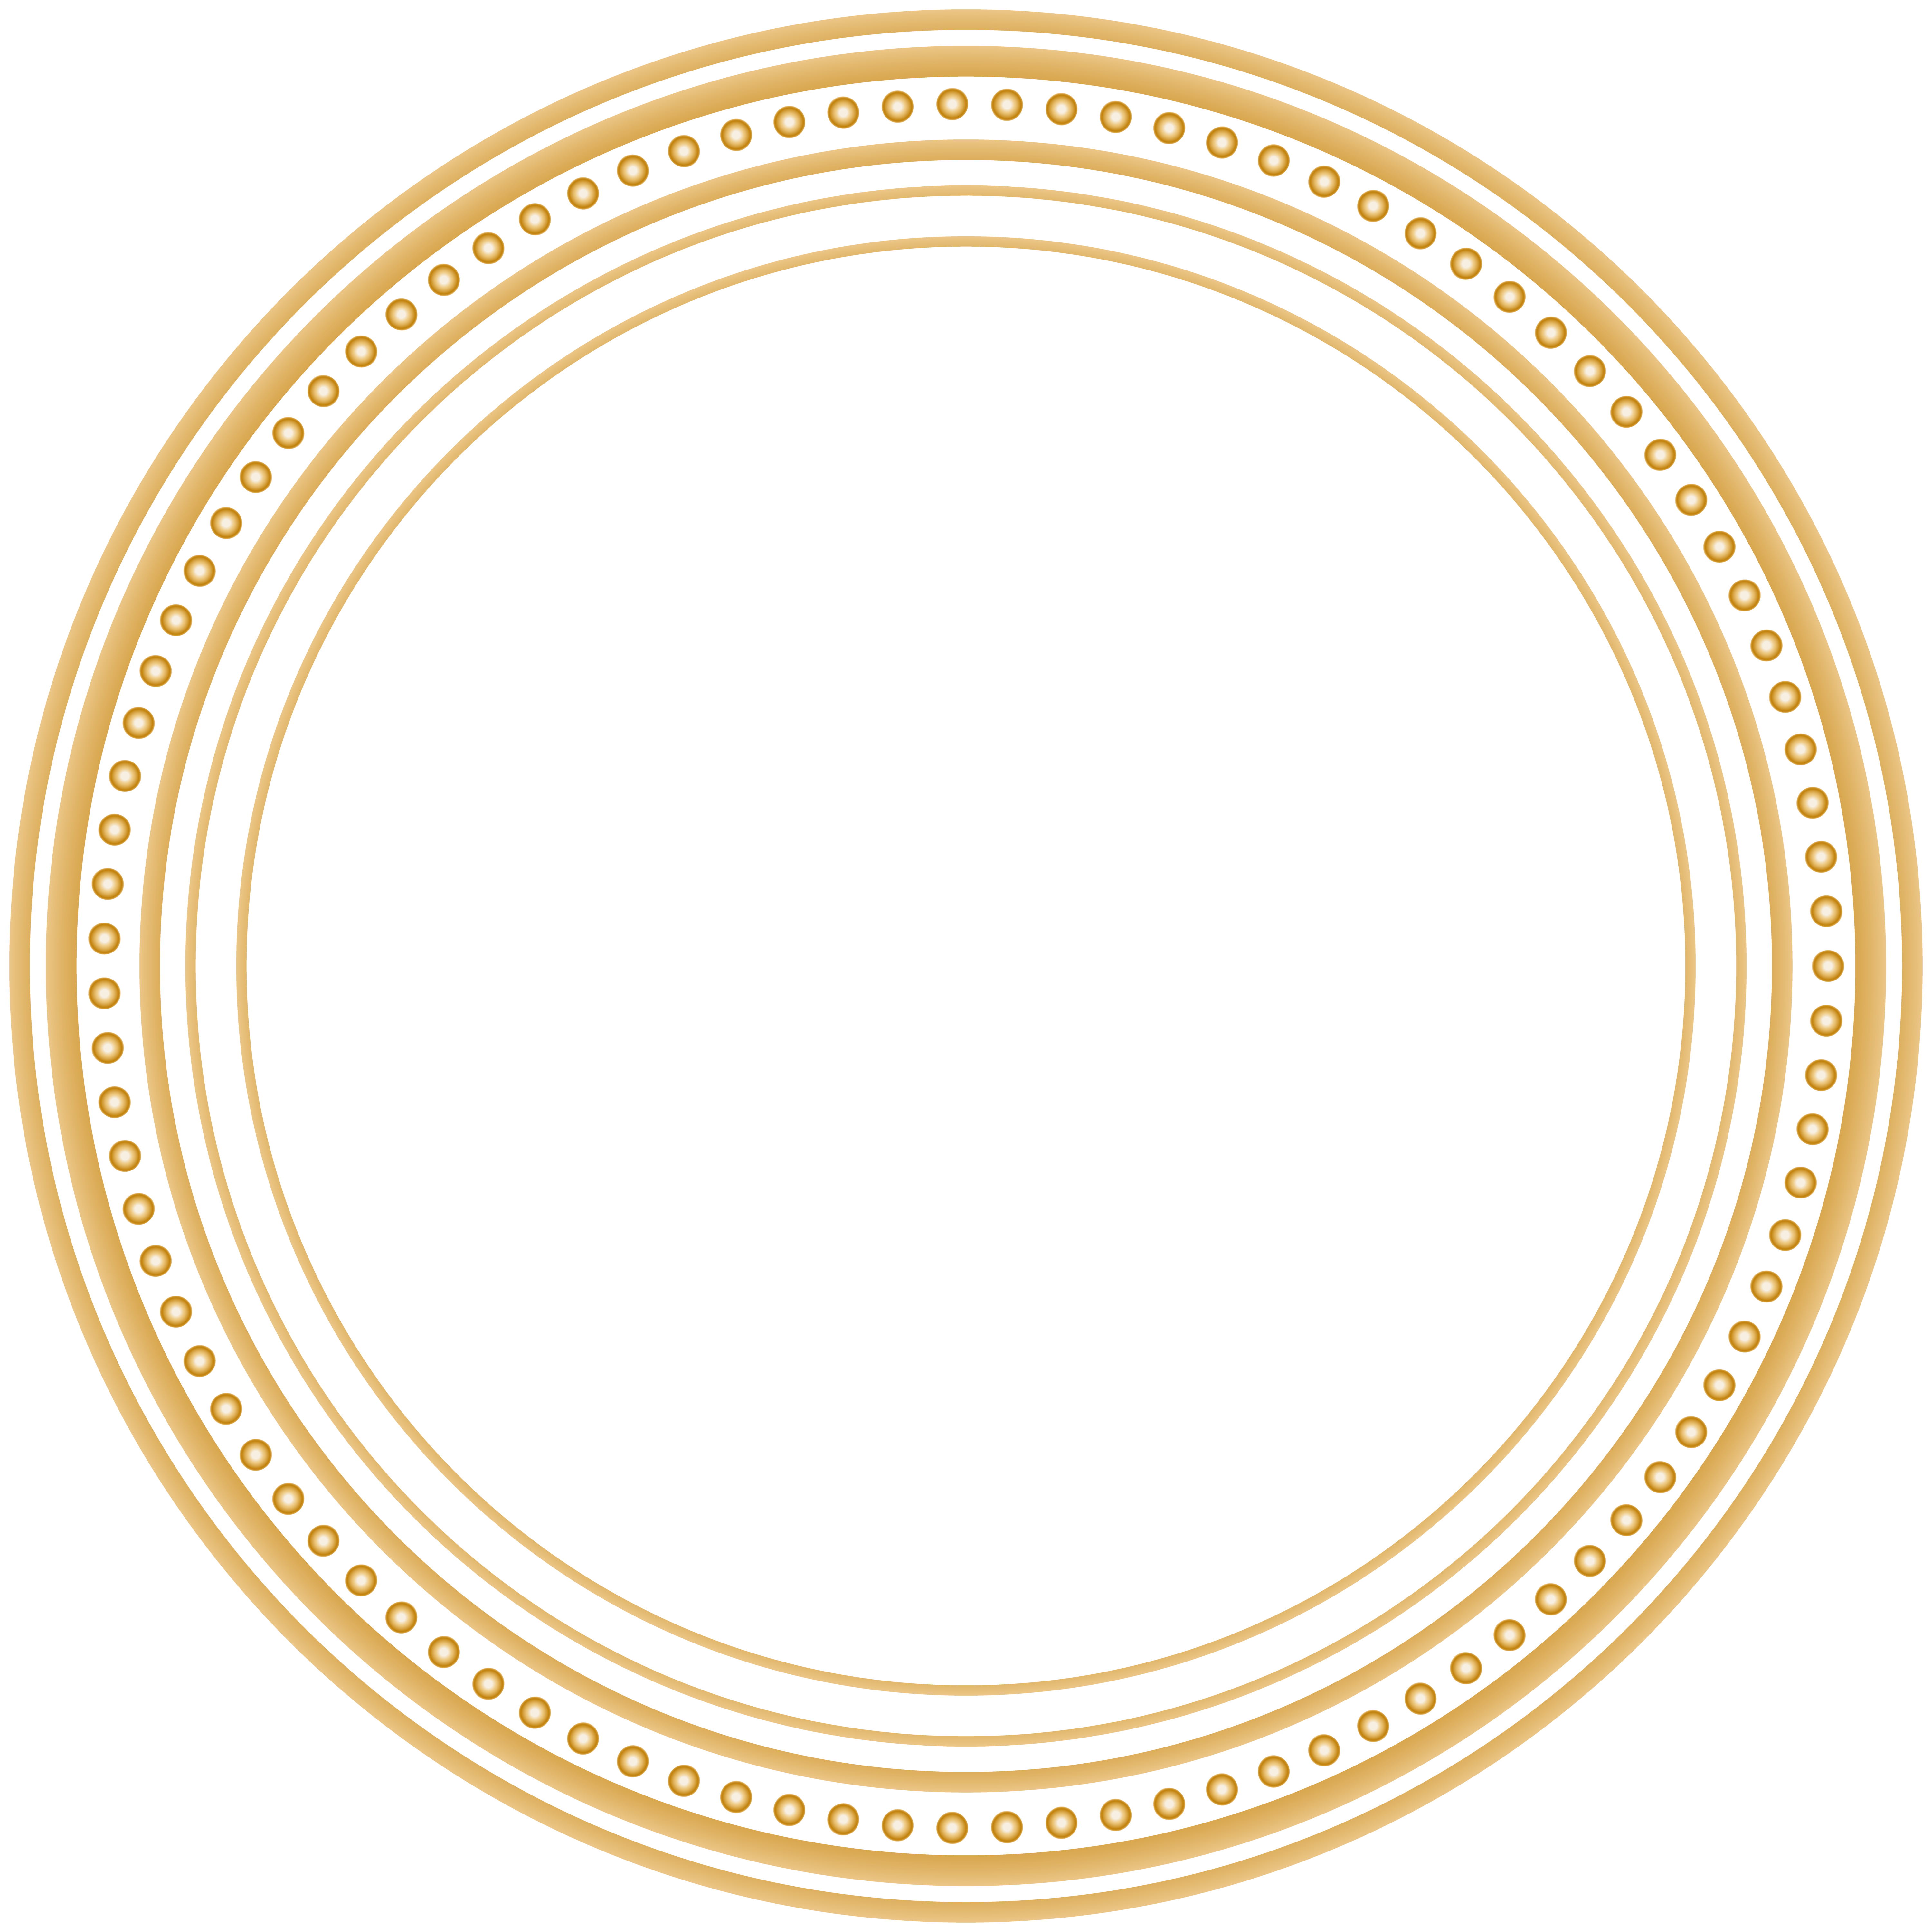 Round Png Frame & Free Round Frame.png Transparent Images.